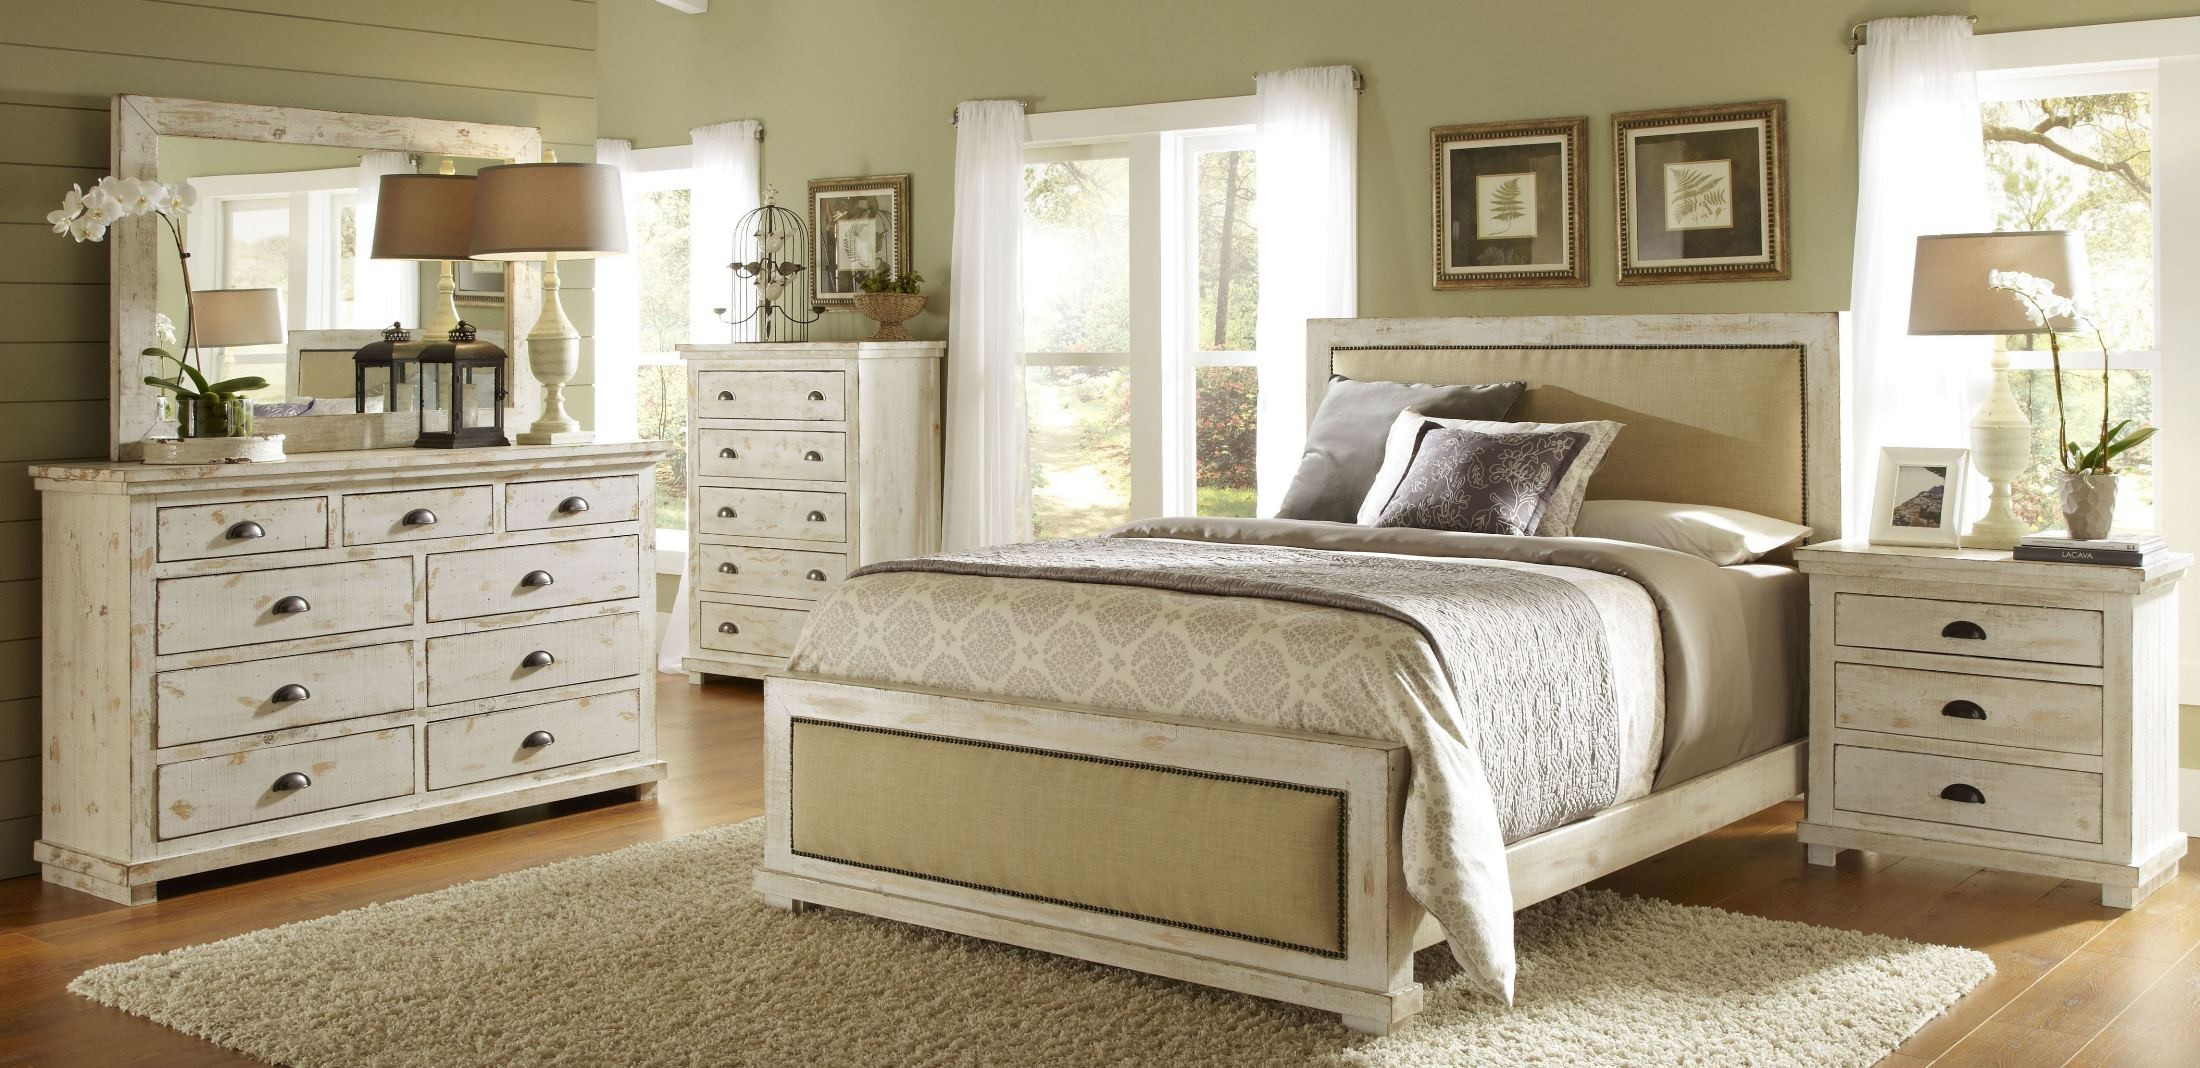 Willow Distressed White Upholstered Bedroom Set From Progressive Furniture Coleman Furniture